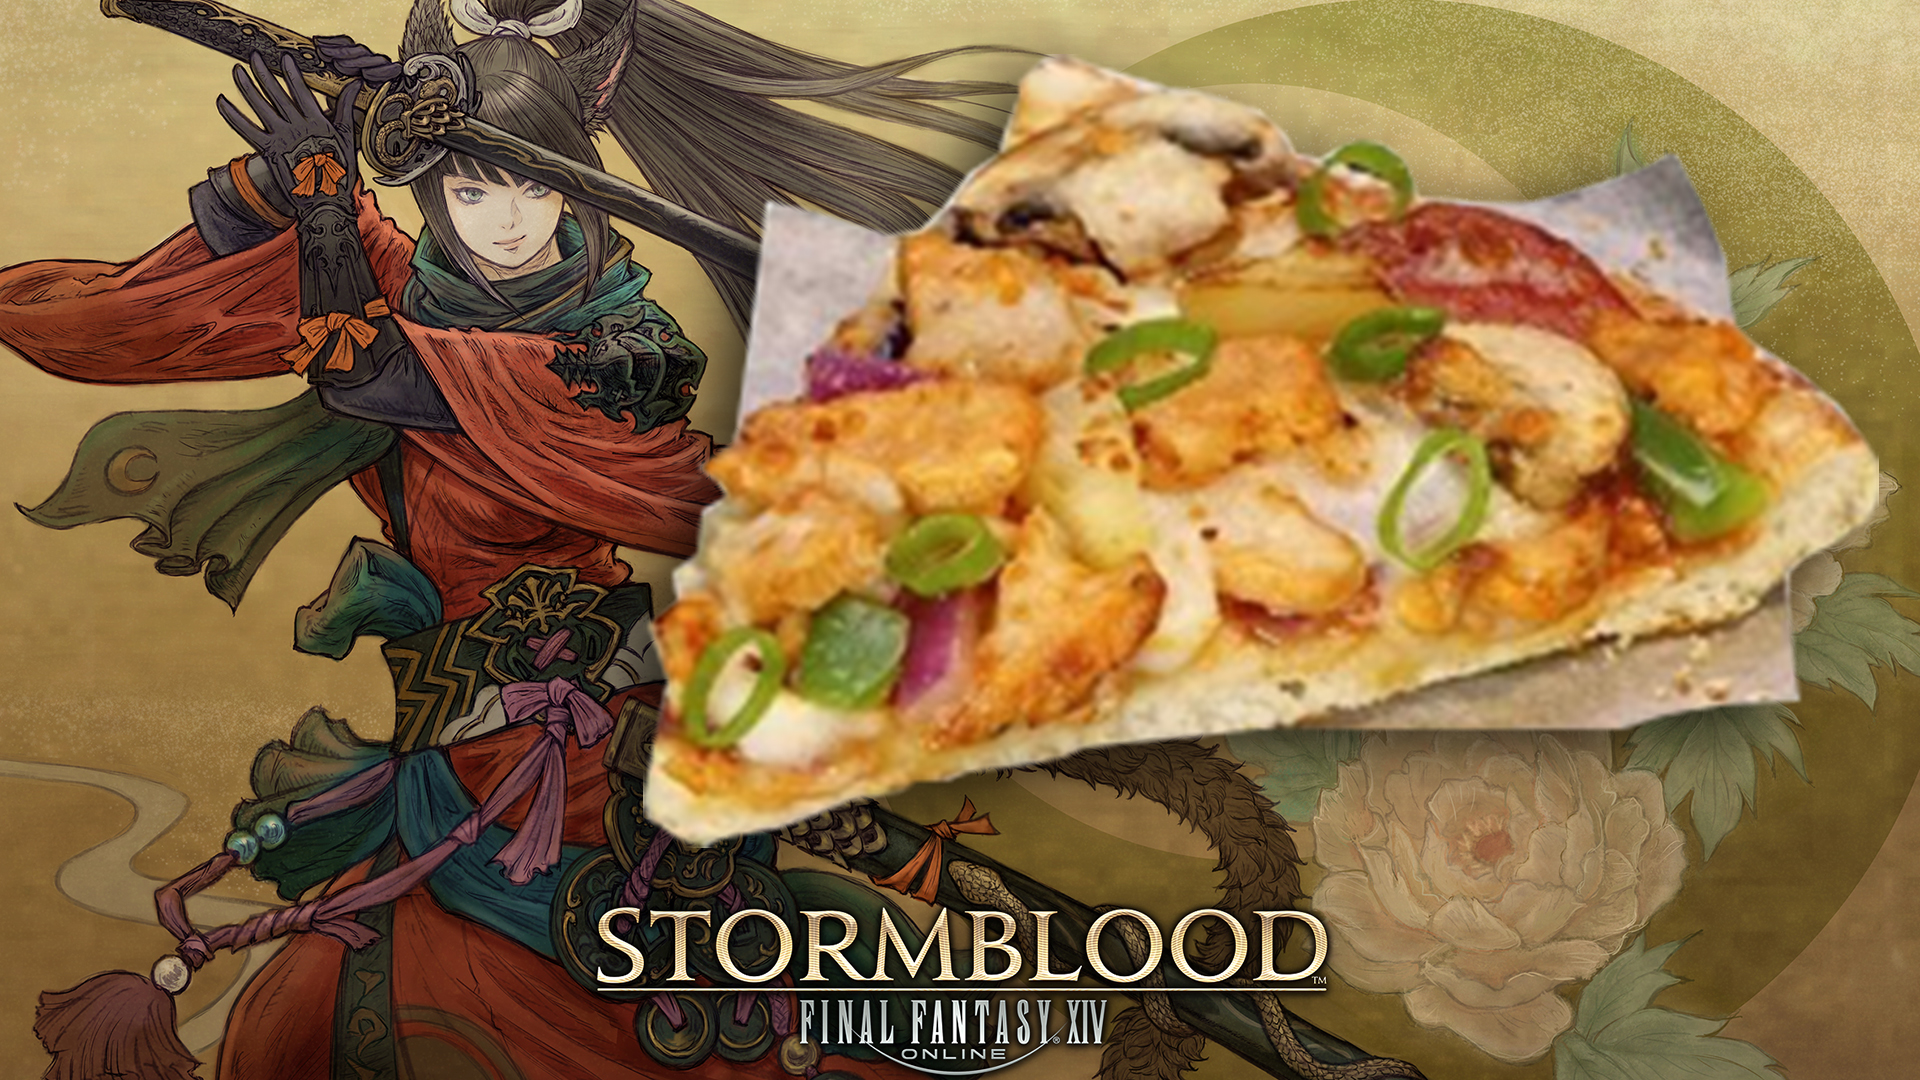 Final Fantasy has a pizza promotion for you folks down under screenshot